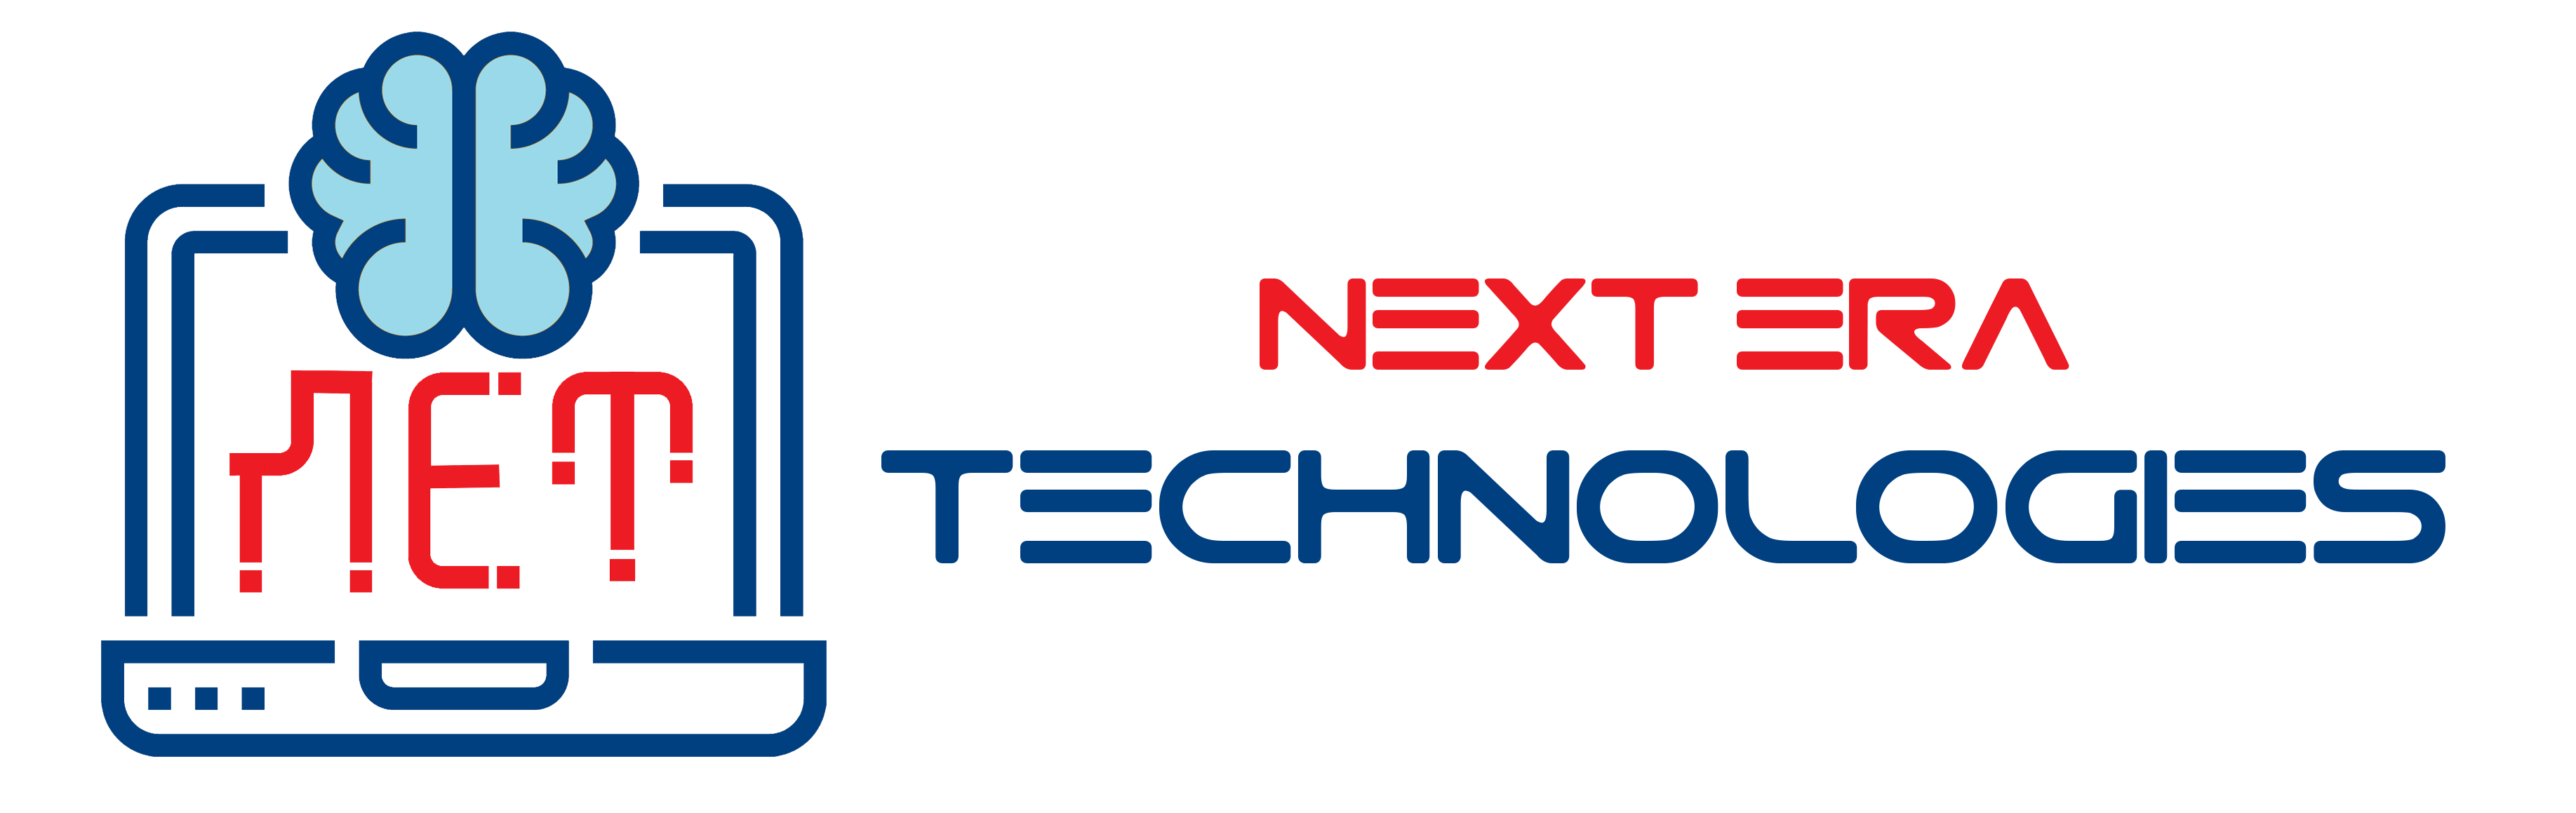 neXt Era Technologies